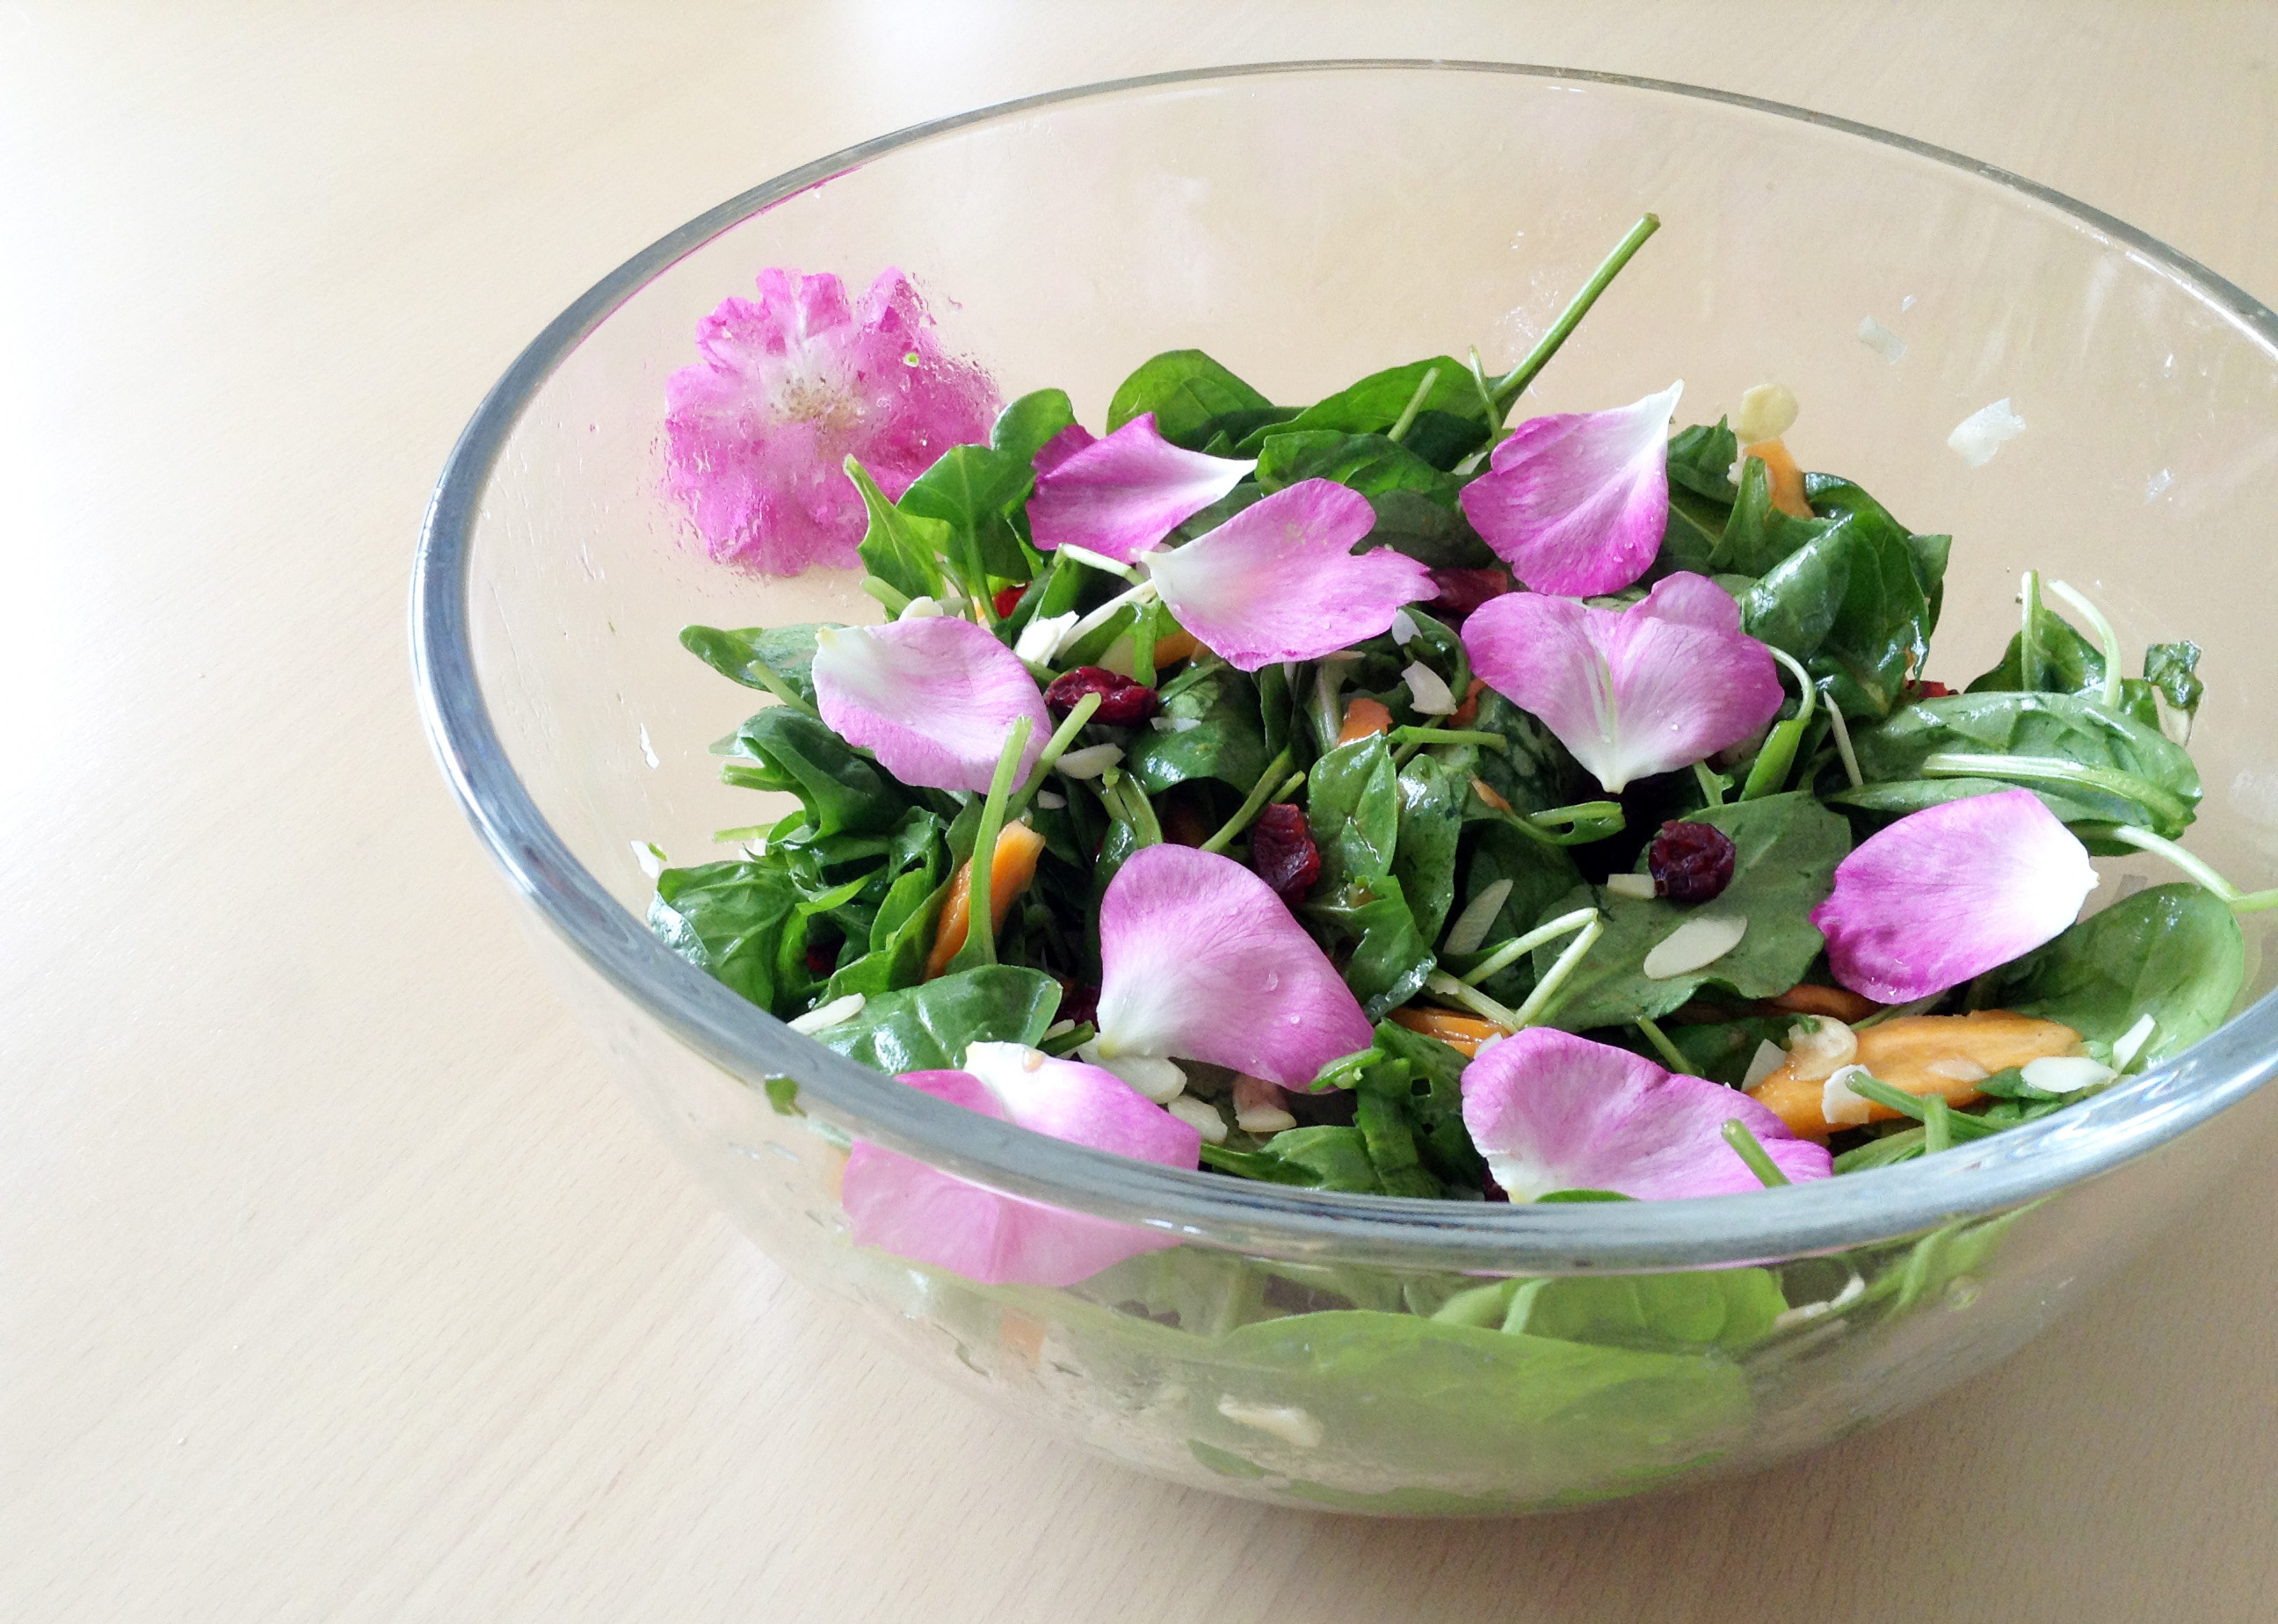 Floral salad with spinach, arugula and roses